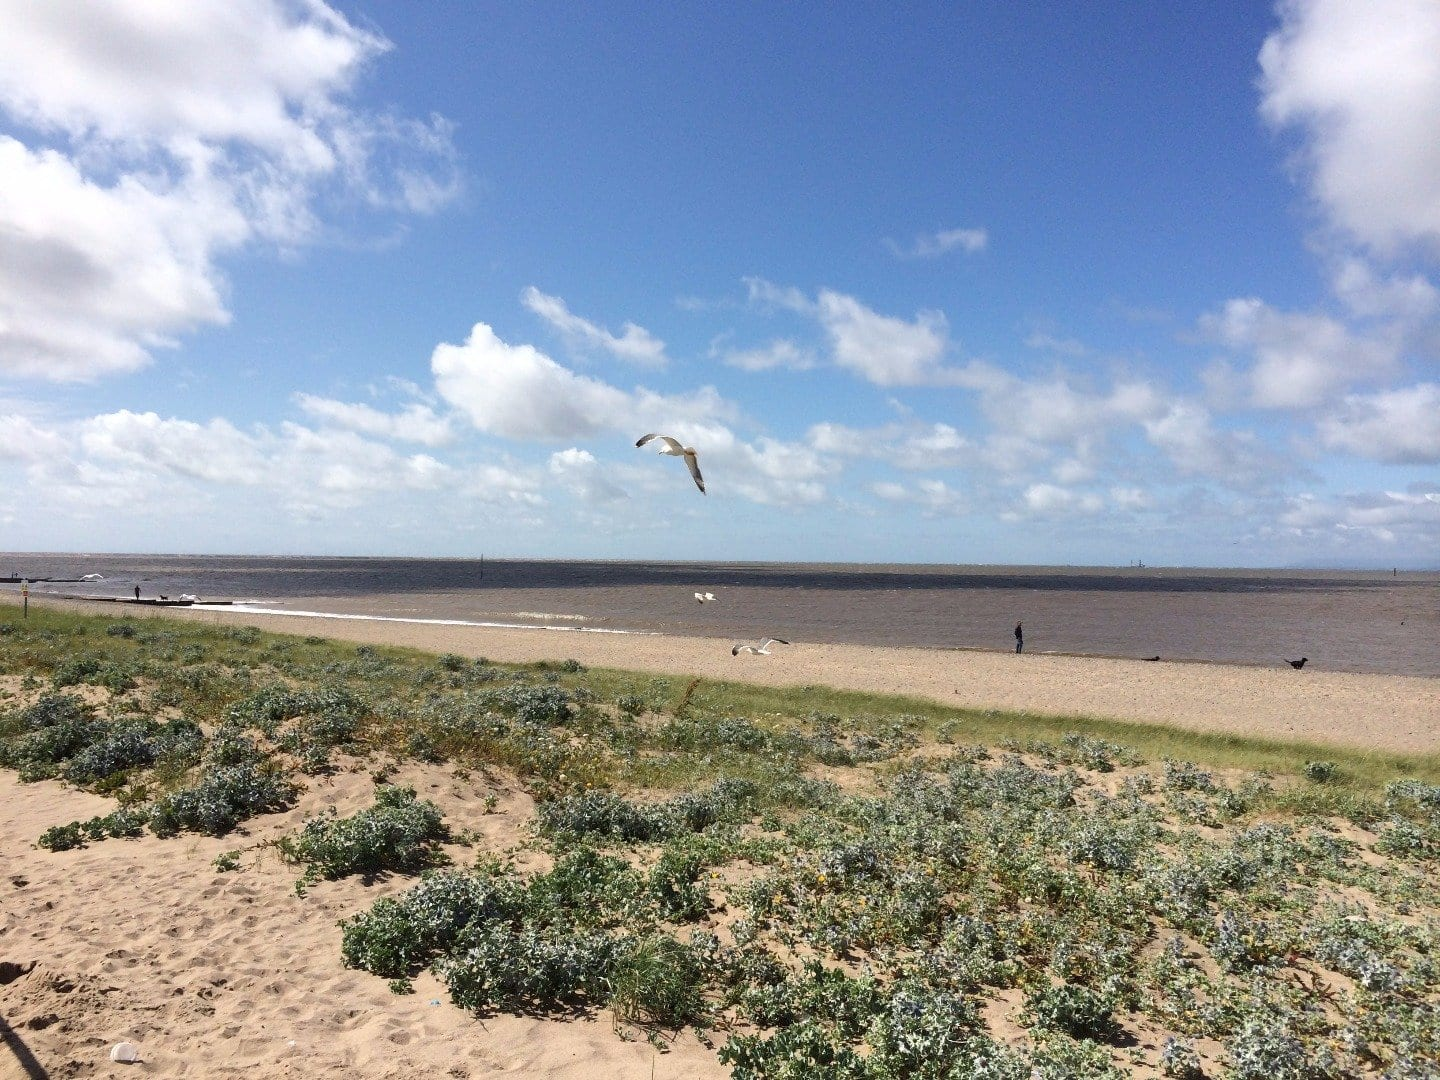 Beach at Fleetwood, Site of Special Scientific Interest